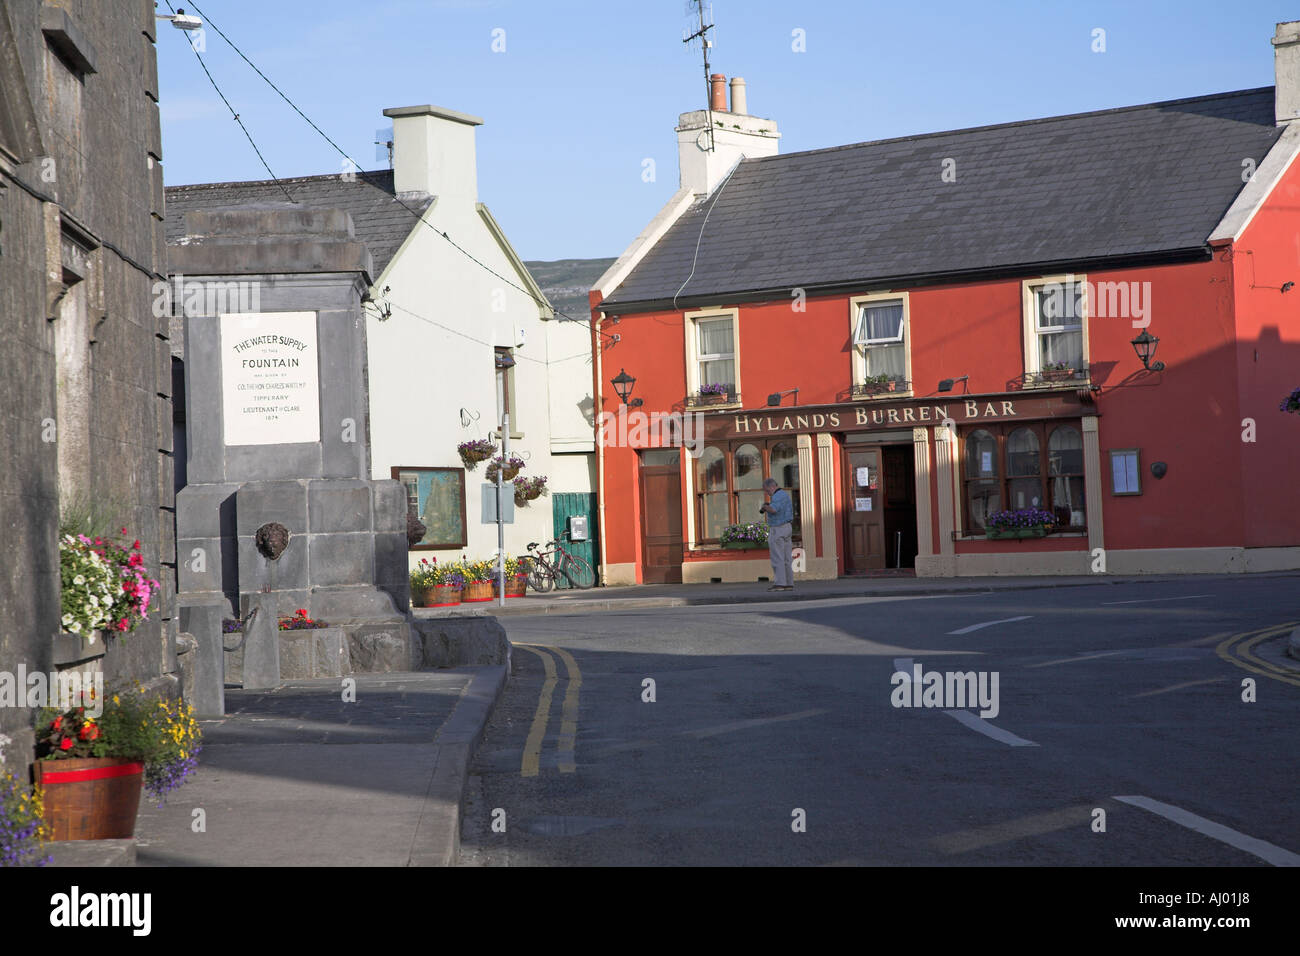 Hylands Burren Hotel in the centre of Ballyvaughan village County Clare Ireland - Stock Image